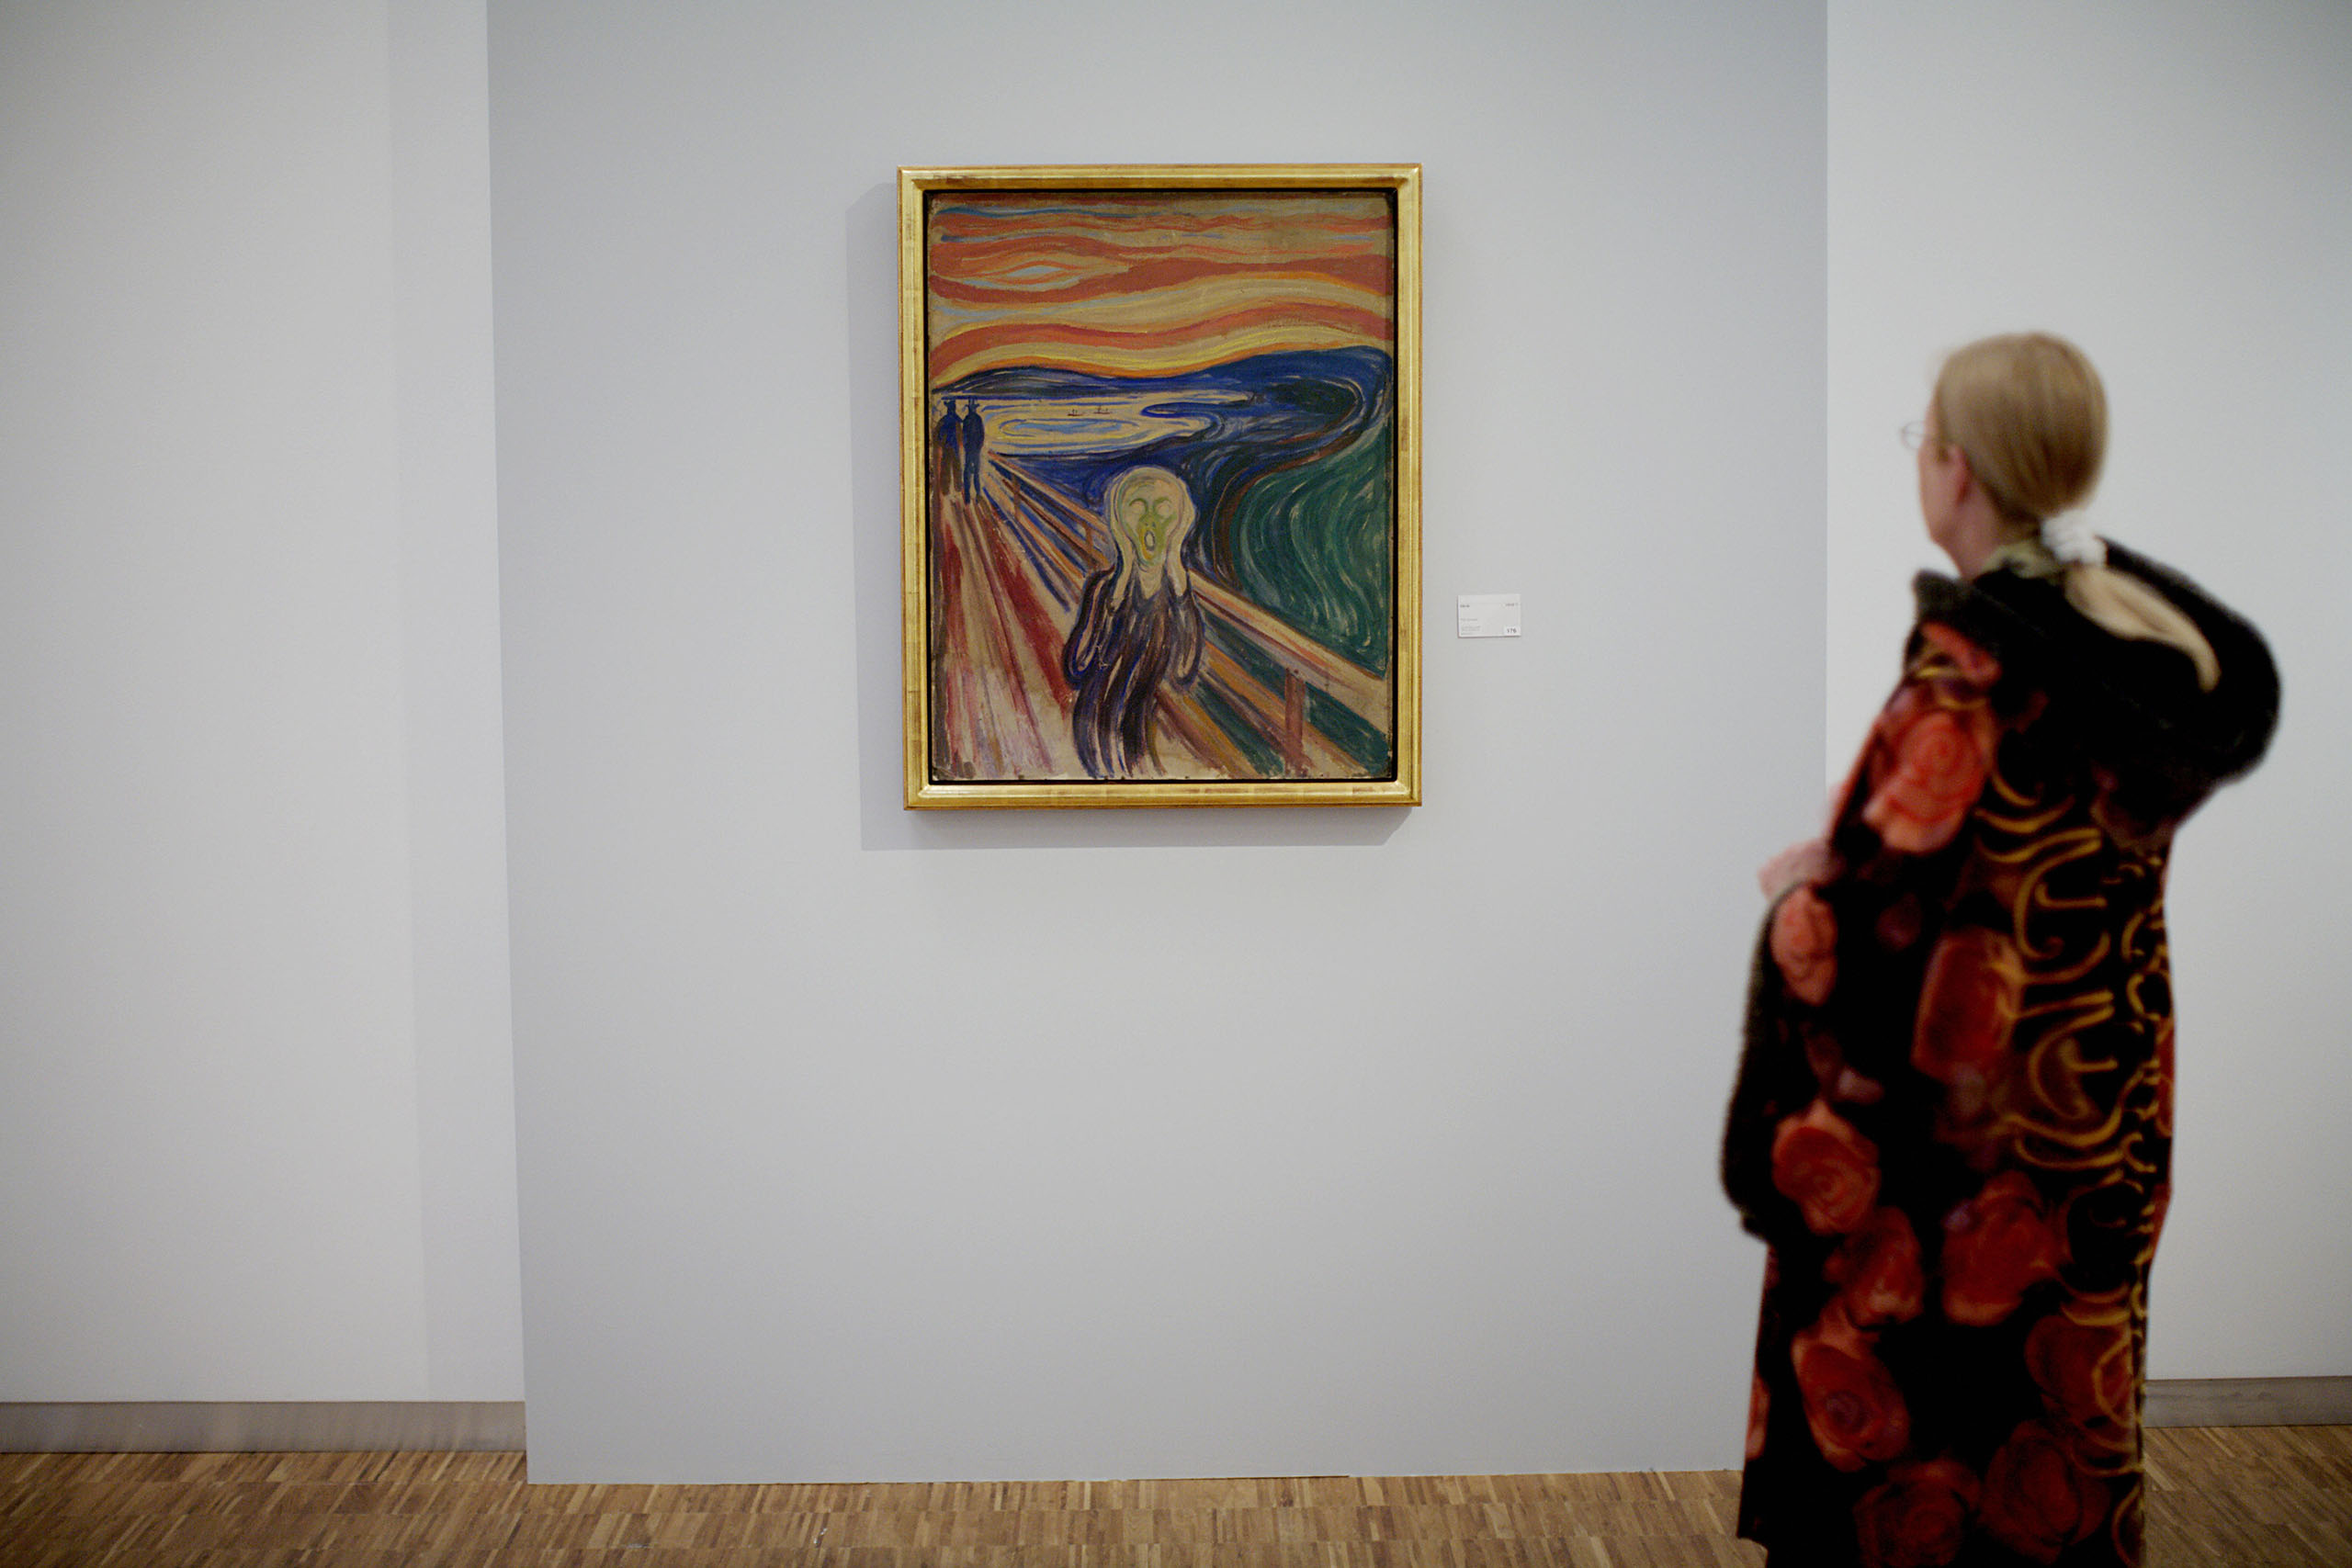 The Scream  by expressionist painter Edvard Munch is on display for the public on May 23, 2008 at the Munch Museum in Oslo after it was restored and conserved following its spectacular theft from the museum in Aug. 2004.